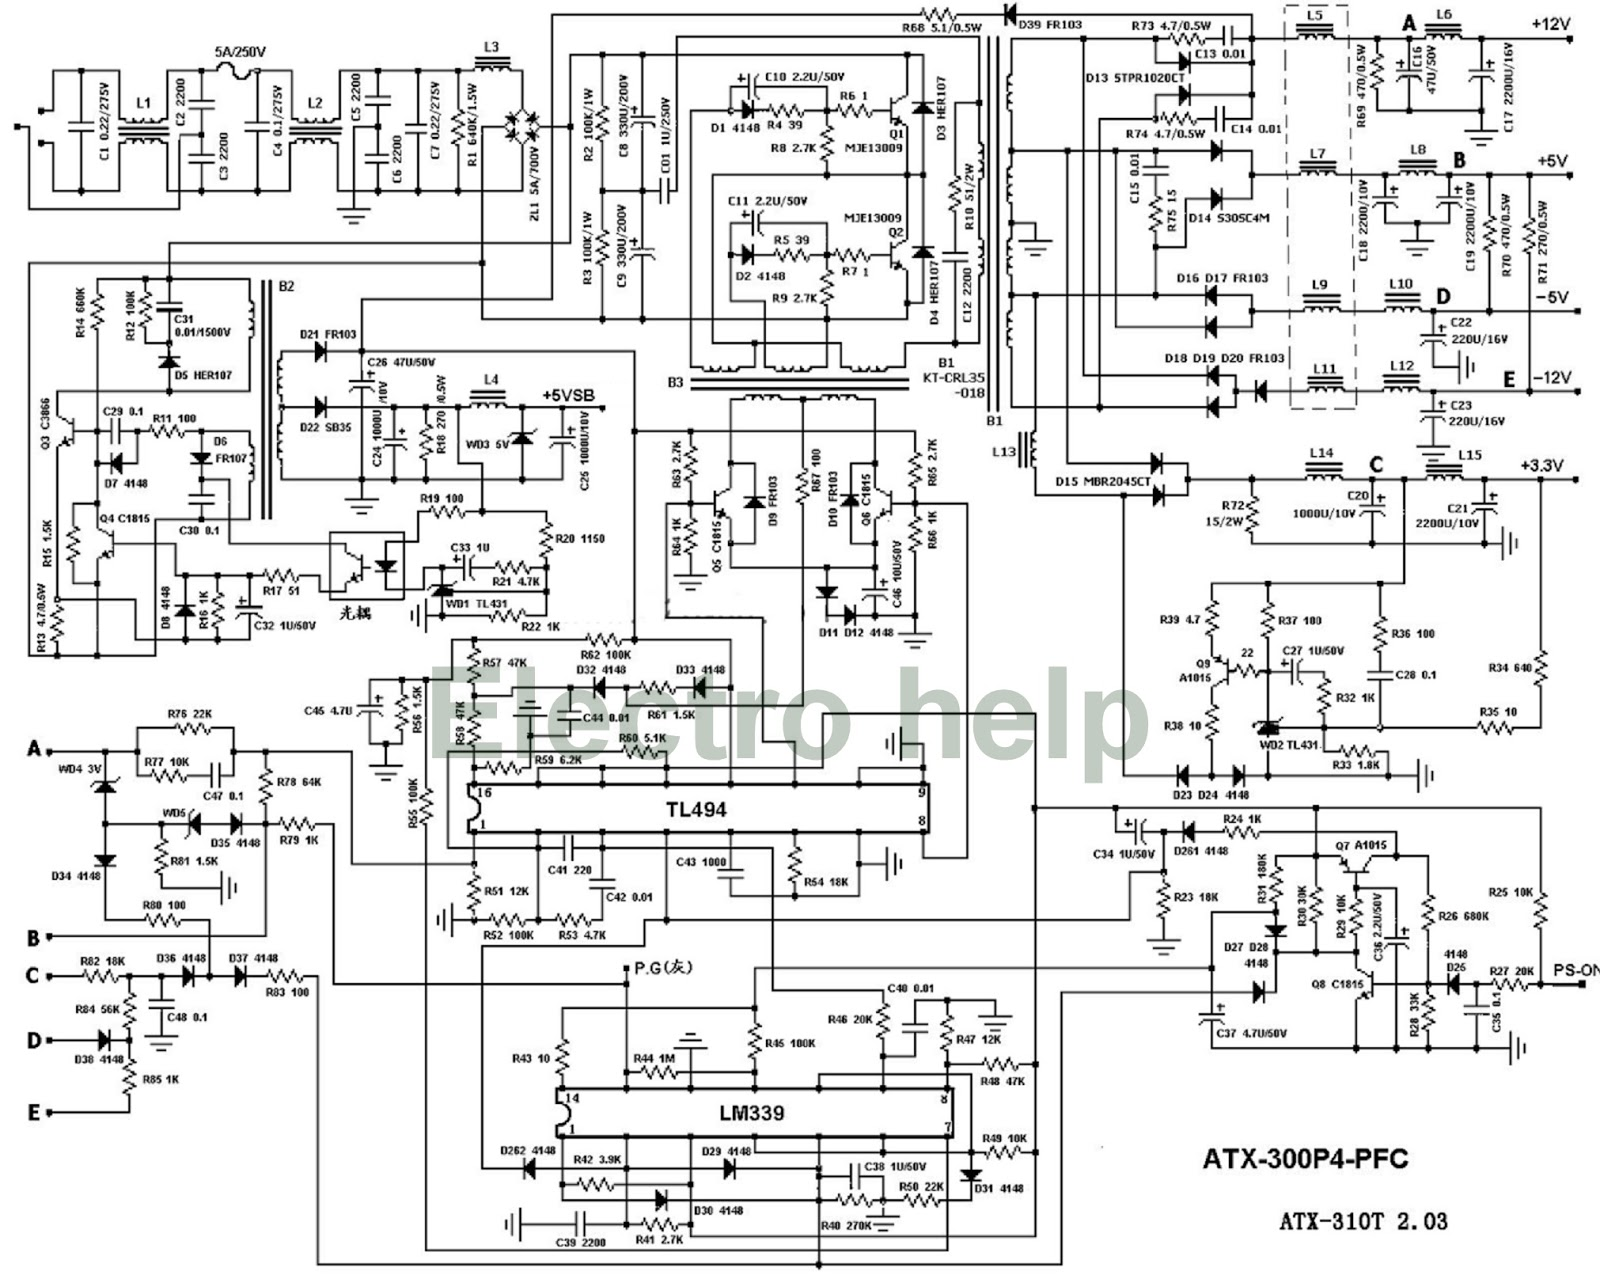 atx atx power supply desktop computers atx300p4 schematic atx power supply wiring diagram at crackthecode.co